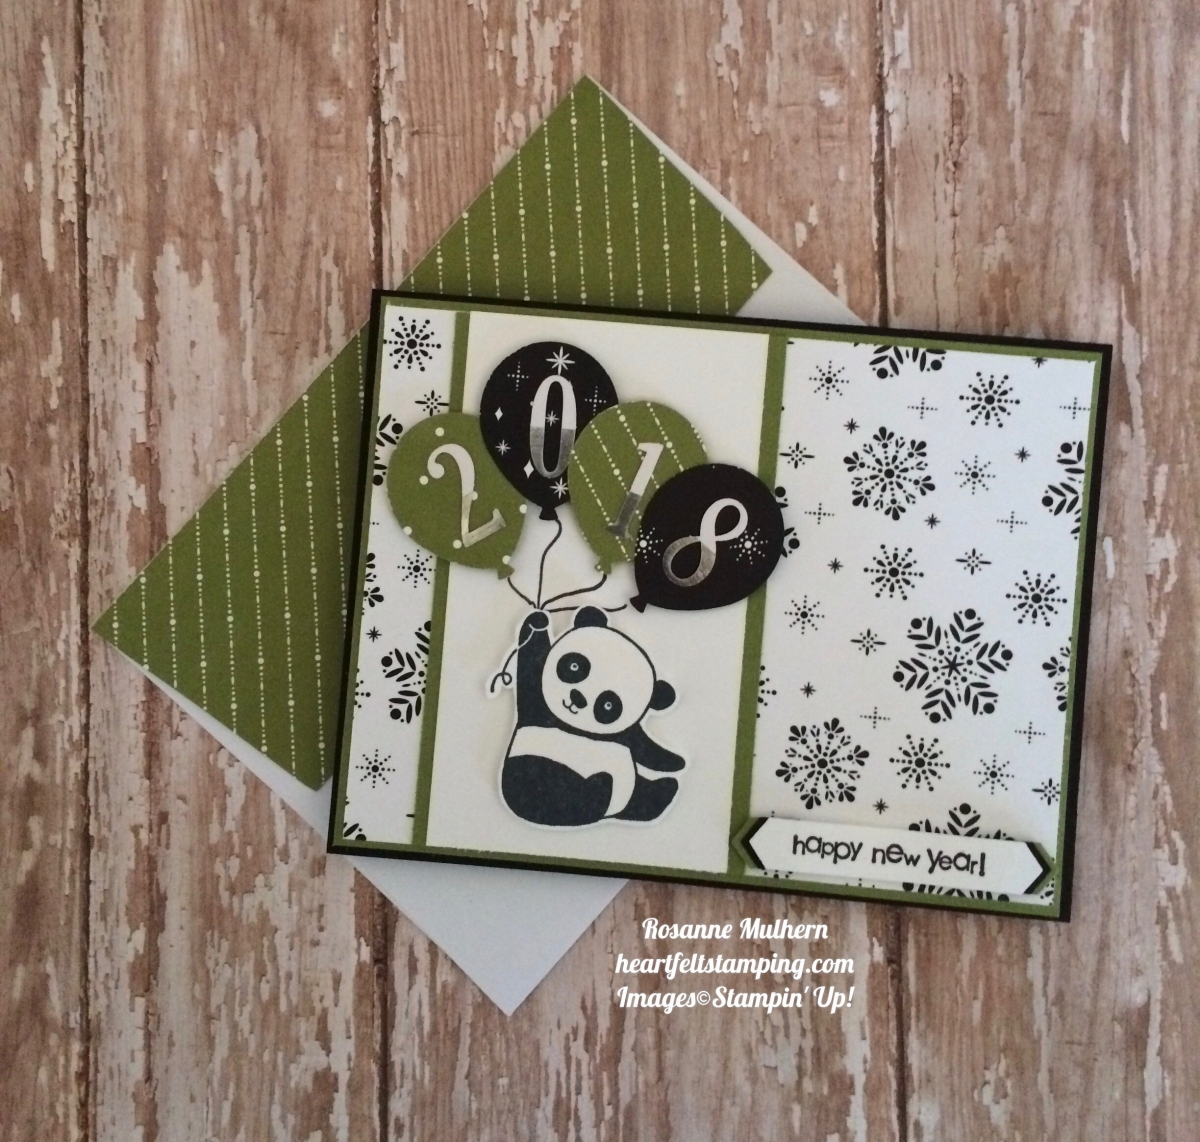 stampin up party pandas new years card rosanne mulhern